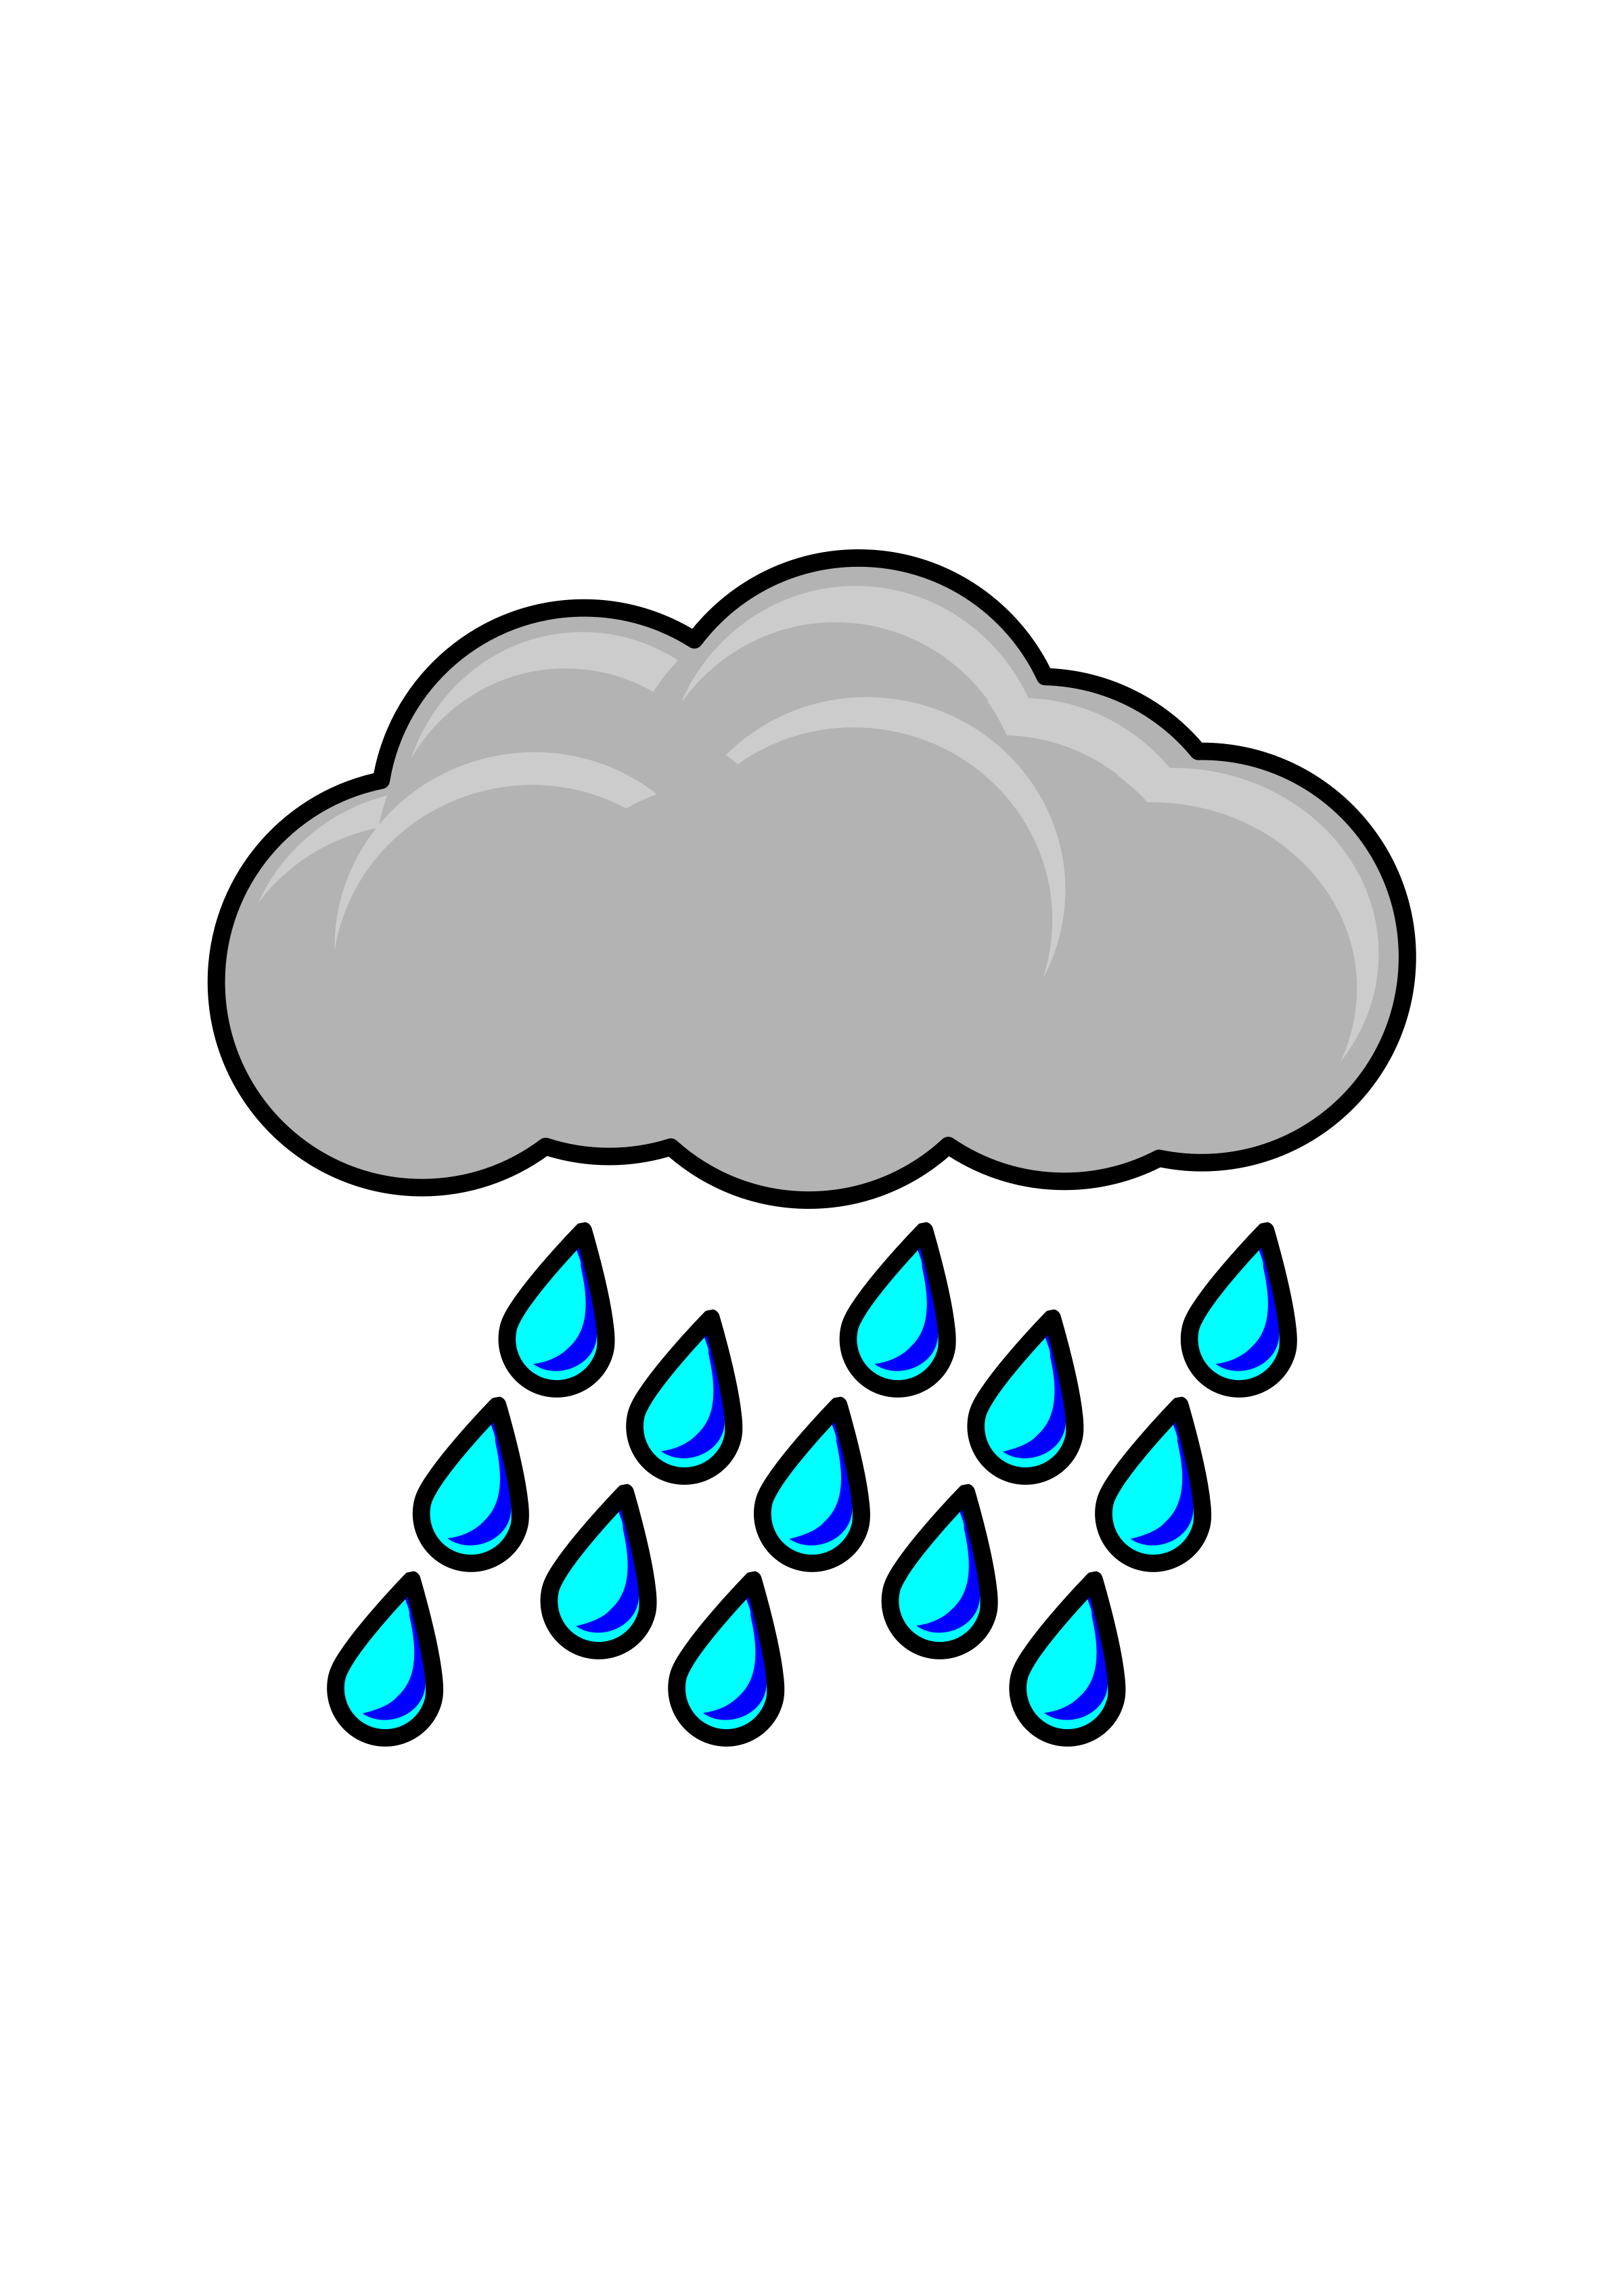 vector freeuse library Raincloud big image png. Black and white raindrop clipart